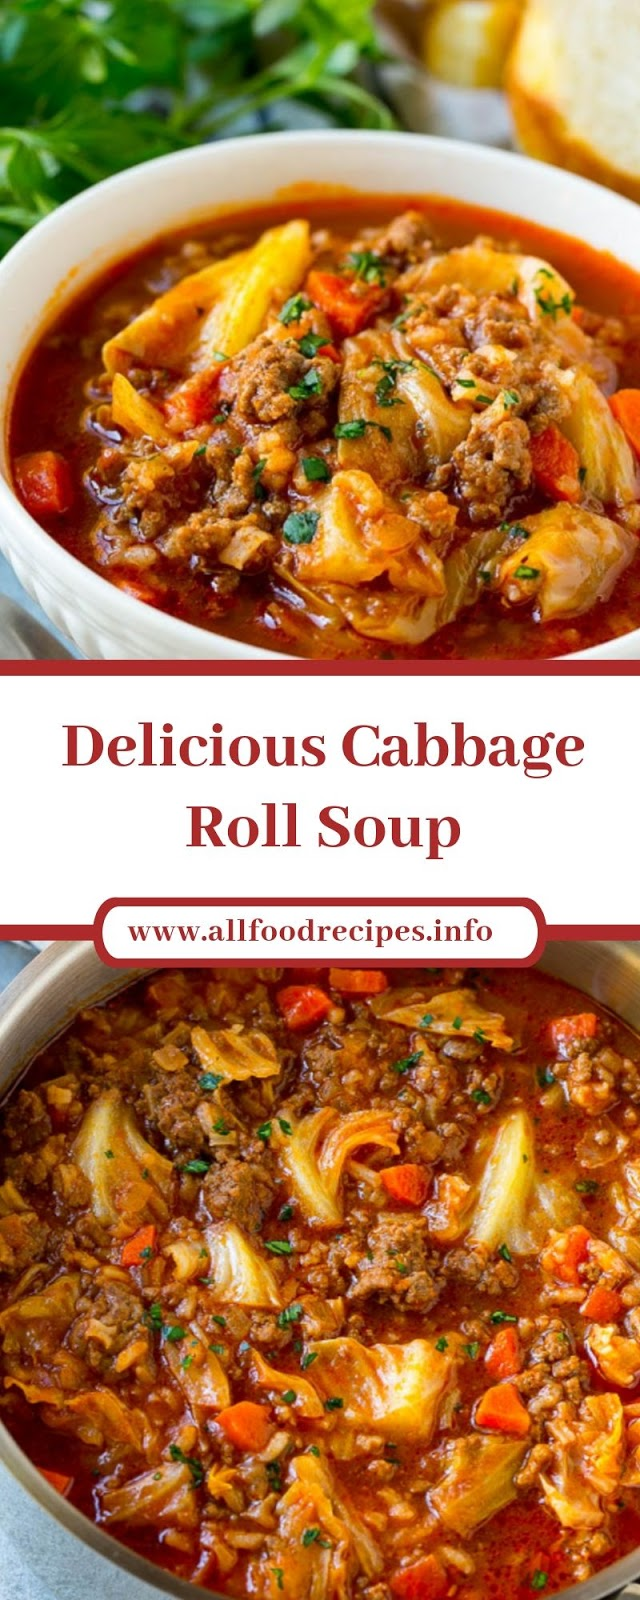 Delicious Cabbage Roll Soup